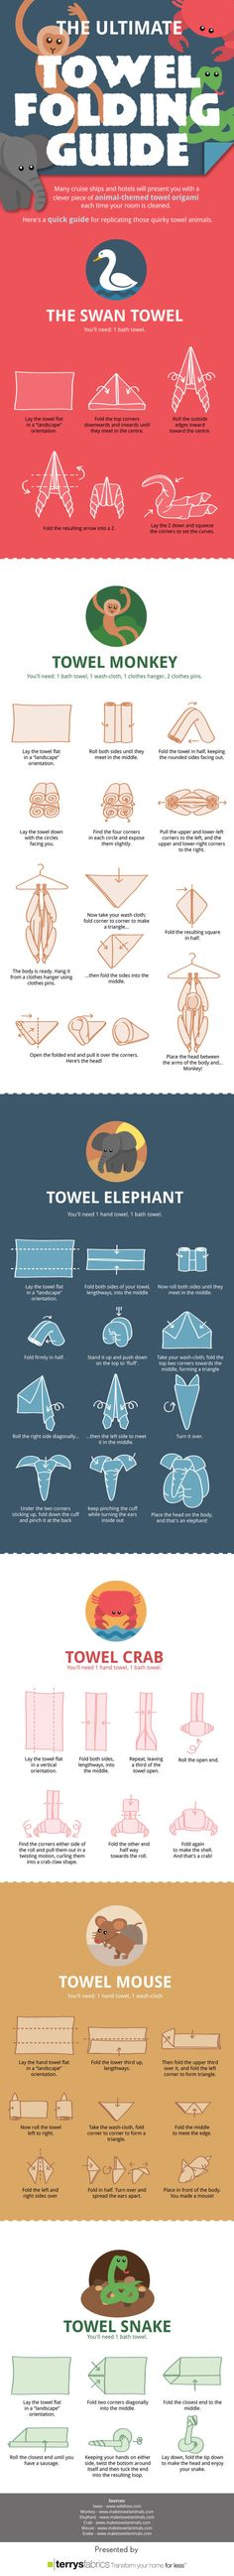 The ultimate towel folding guide - our next company is going to be so excited! ;D